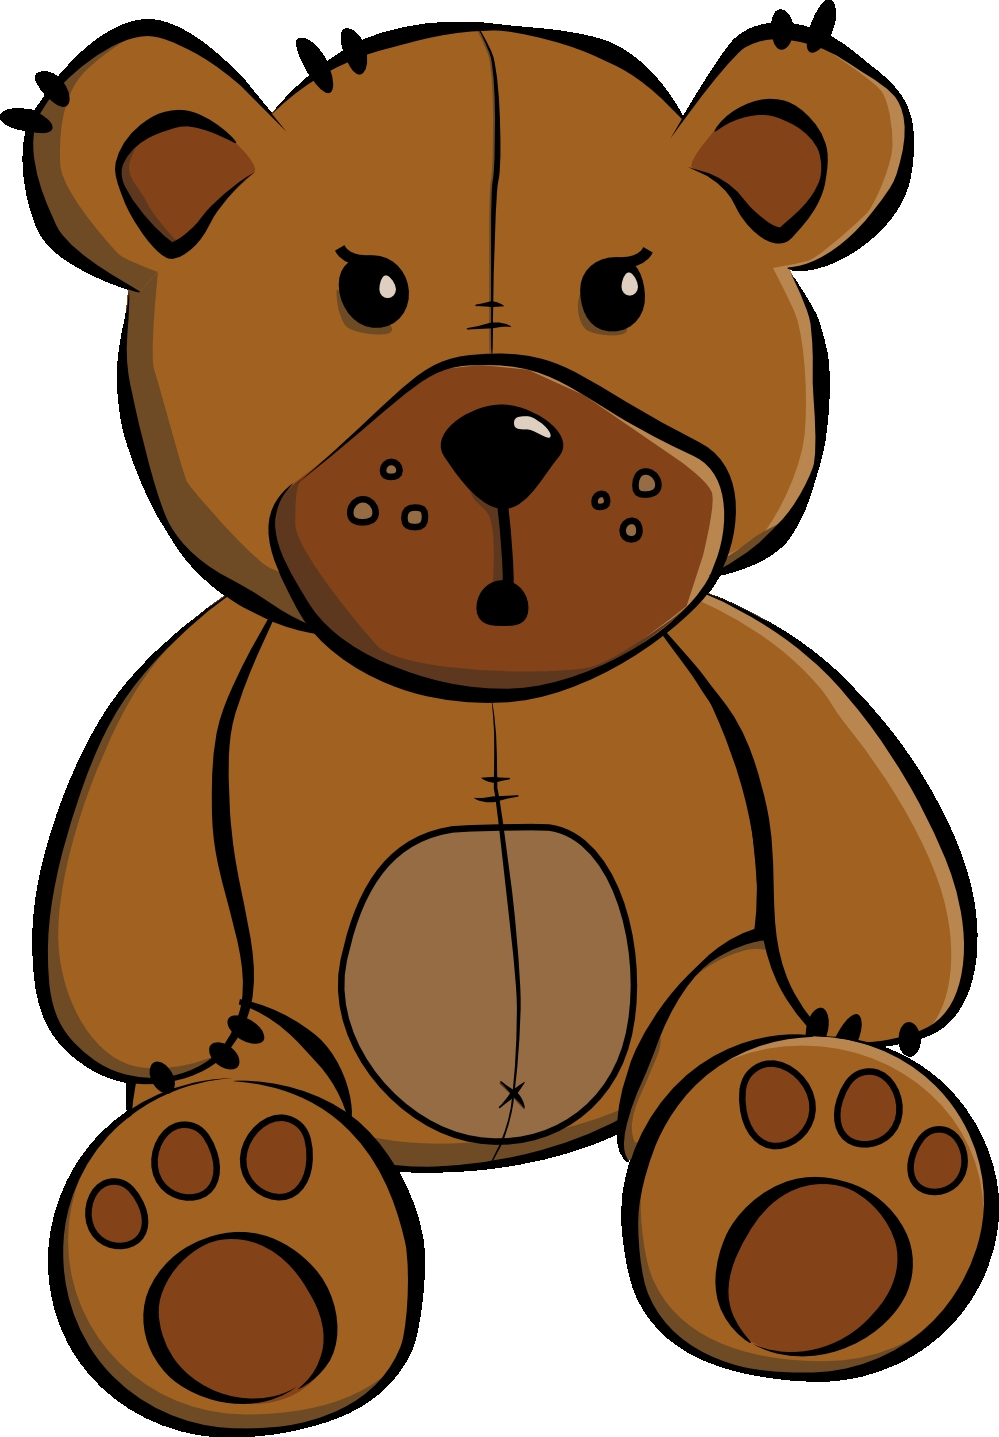 999x1437 Fresh Teddy Bear Clipart Collection